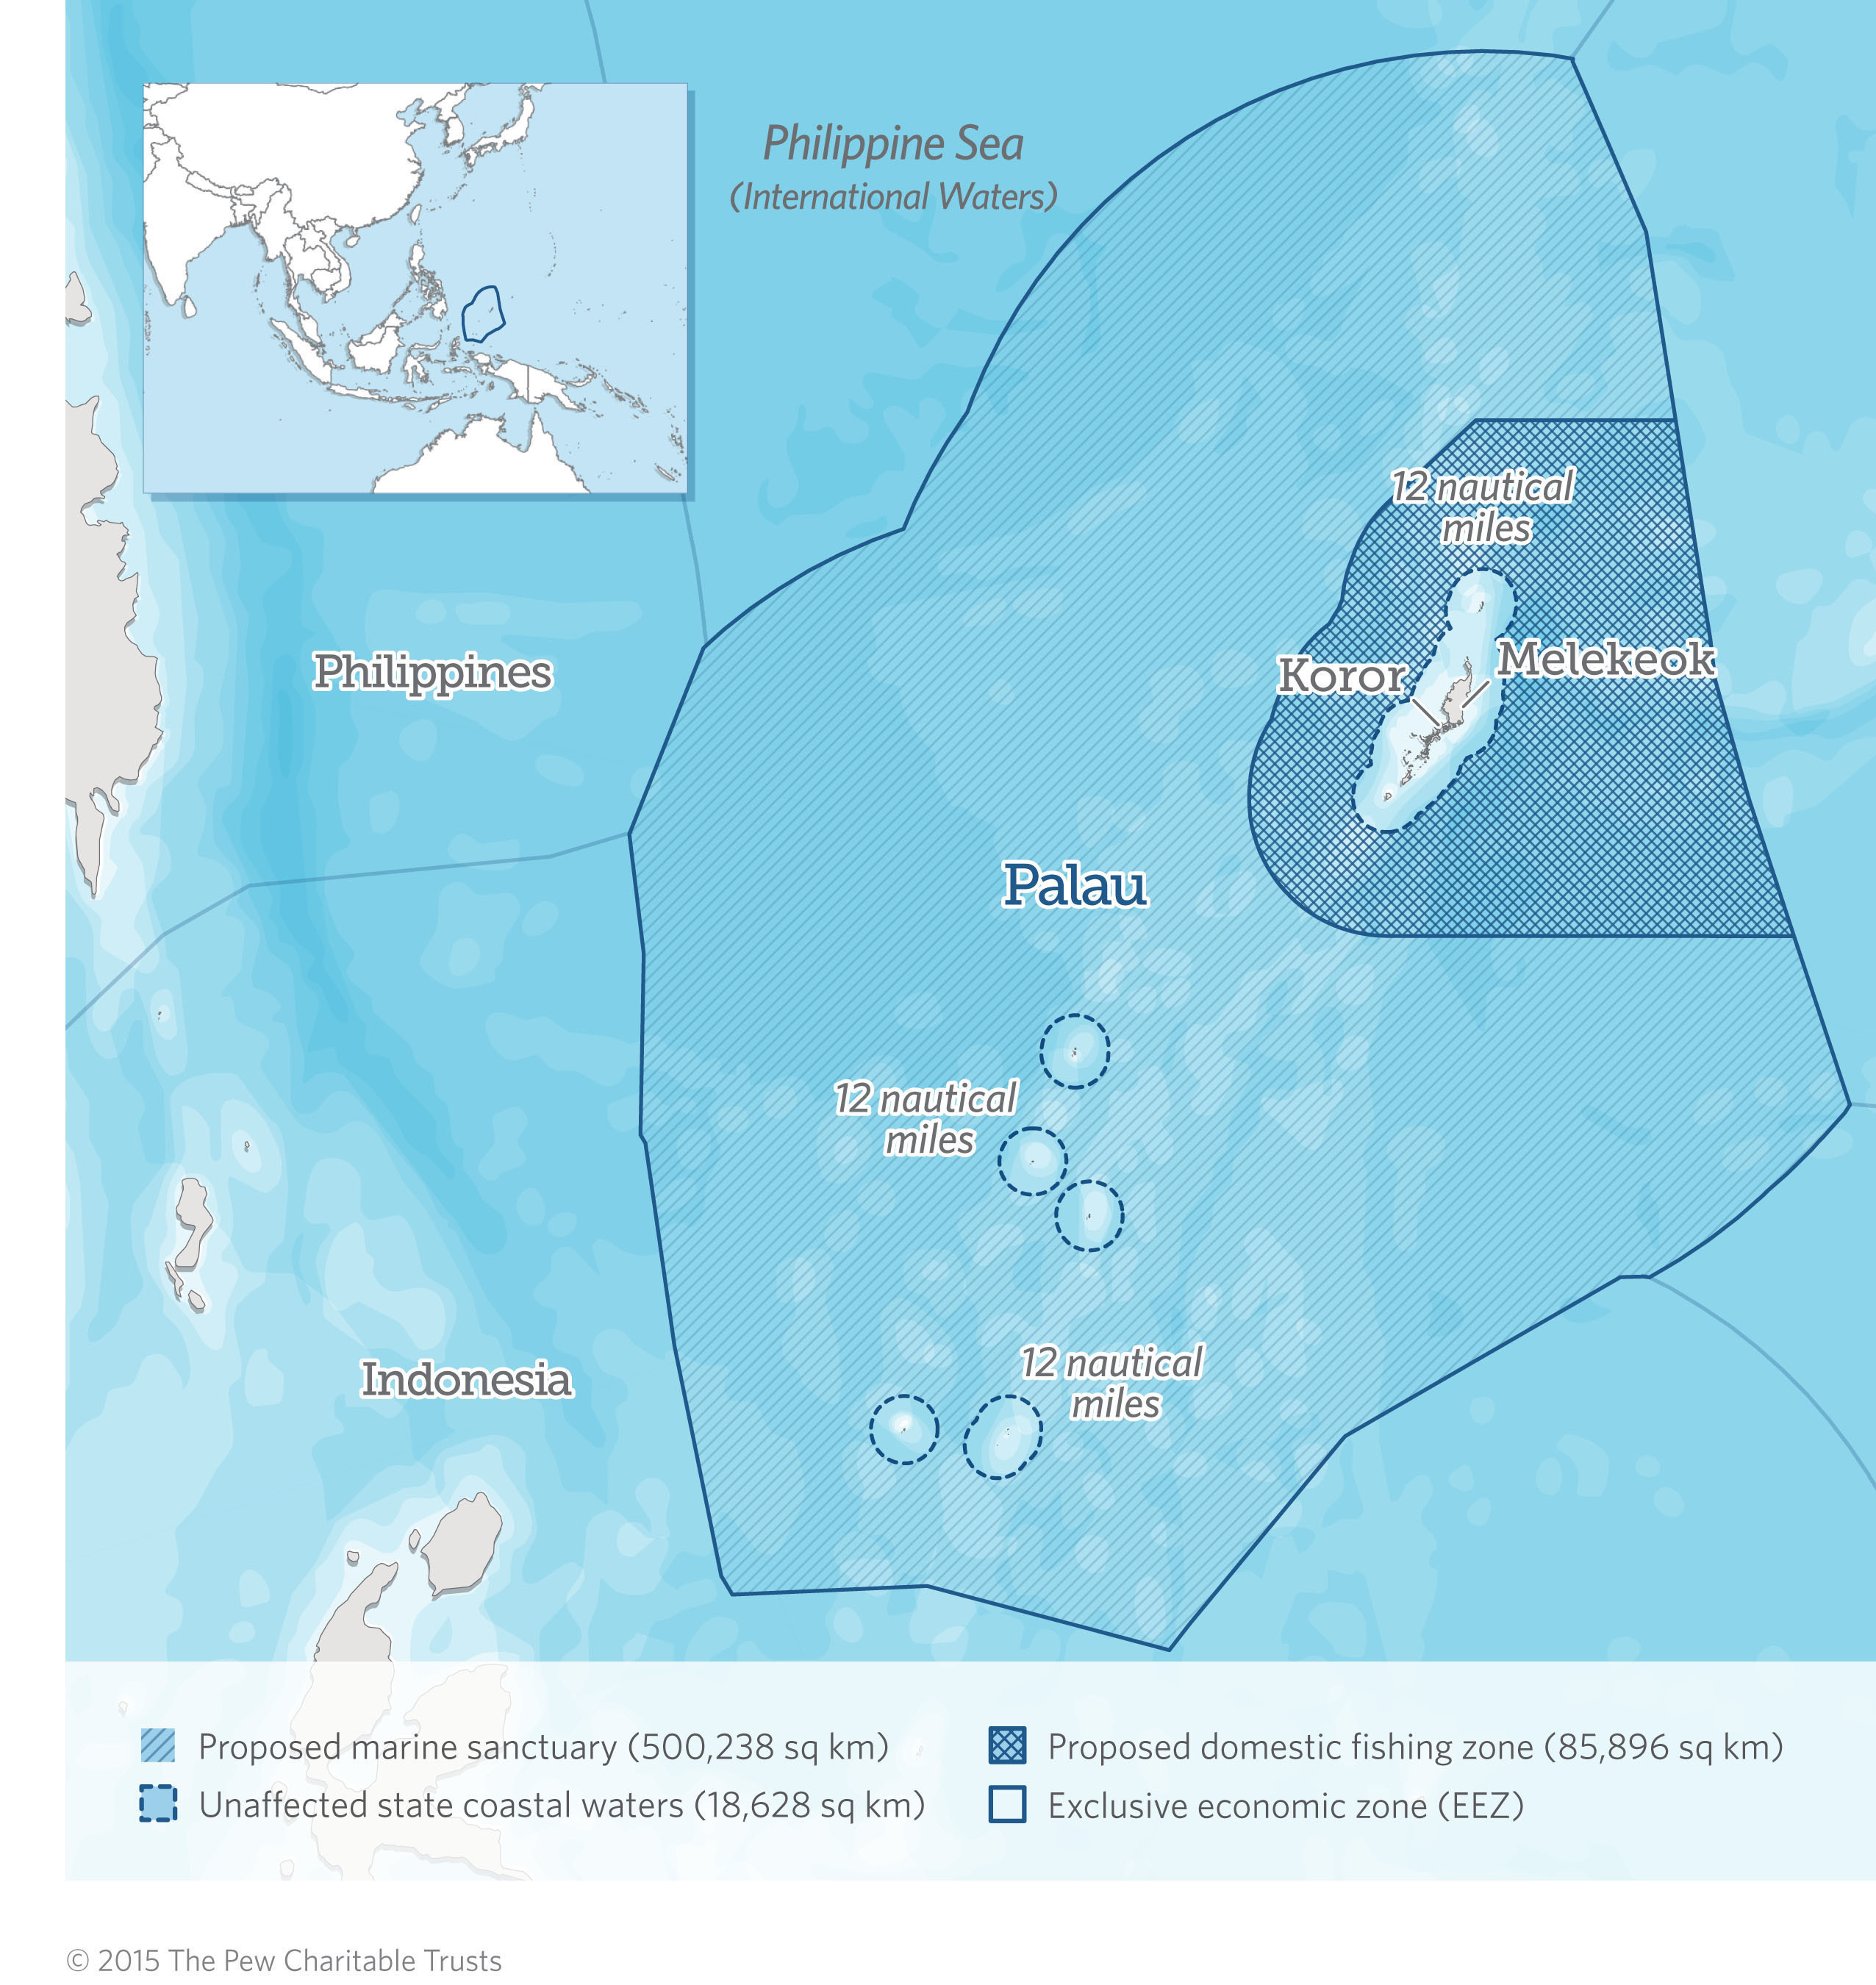 """The creation of the national marine sanctuary makes Palau the first country to declare the waters of its entire exclusive economic zone (EEZ) a marine protected area, with an integral part of the sanctuary a fully protected """"no take"""" zone of 500,000 square kilometers (193,000 square miles)."""